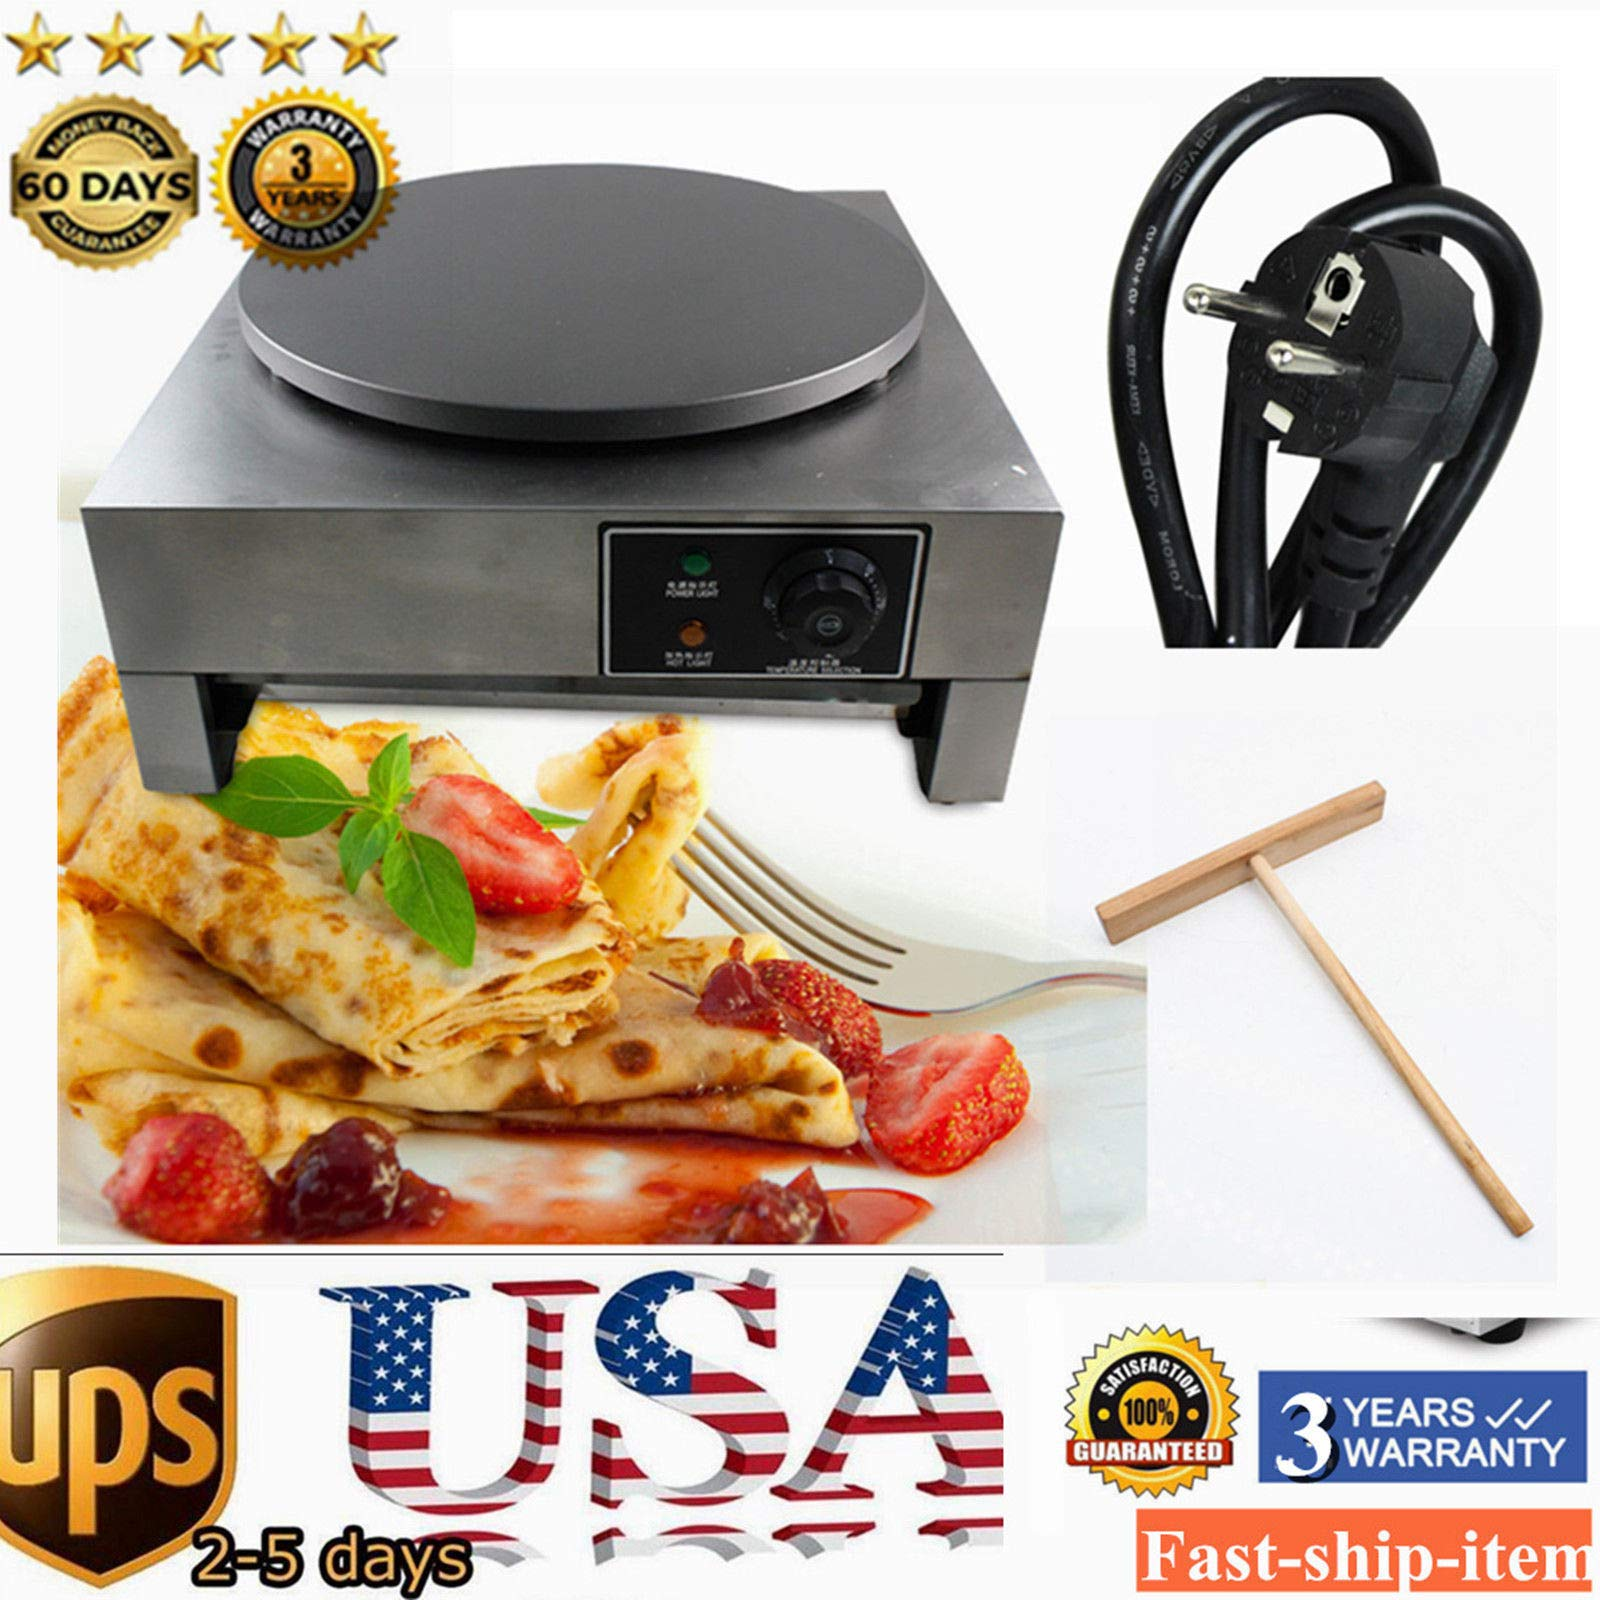 Crepe Maker Machine Pancake Griddle, 3KW 16'' Commercial Nonstick Electric Crepe Maker Pancake Machine Kitchen (US Stock) by GDAE10 (Image #2)